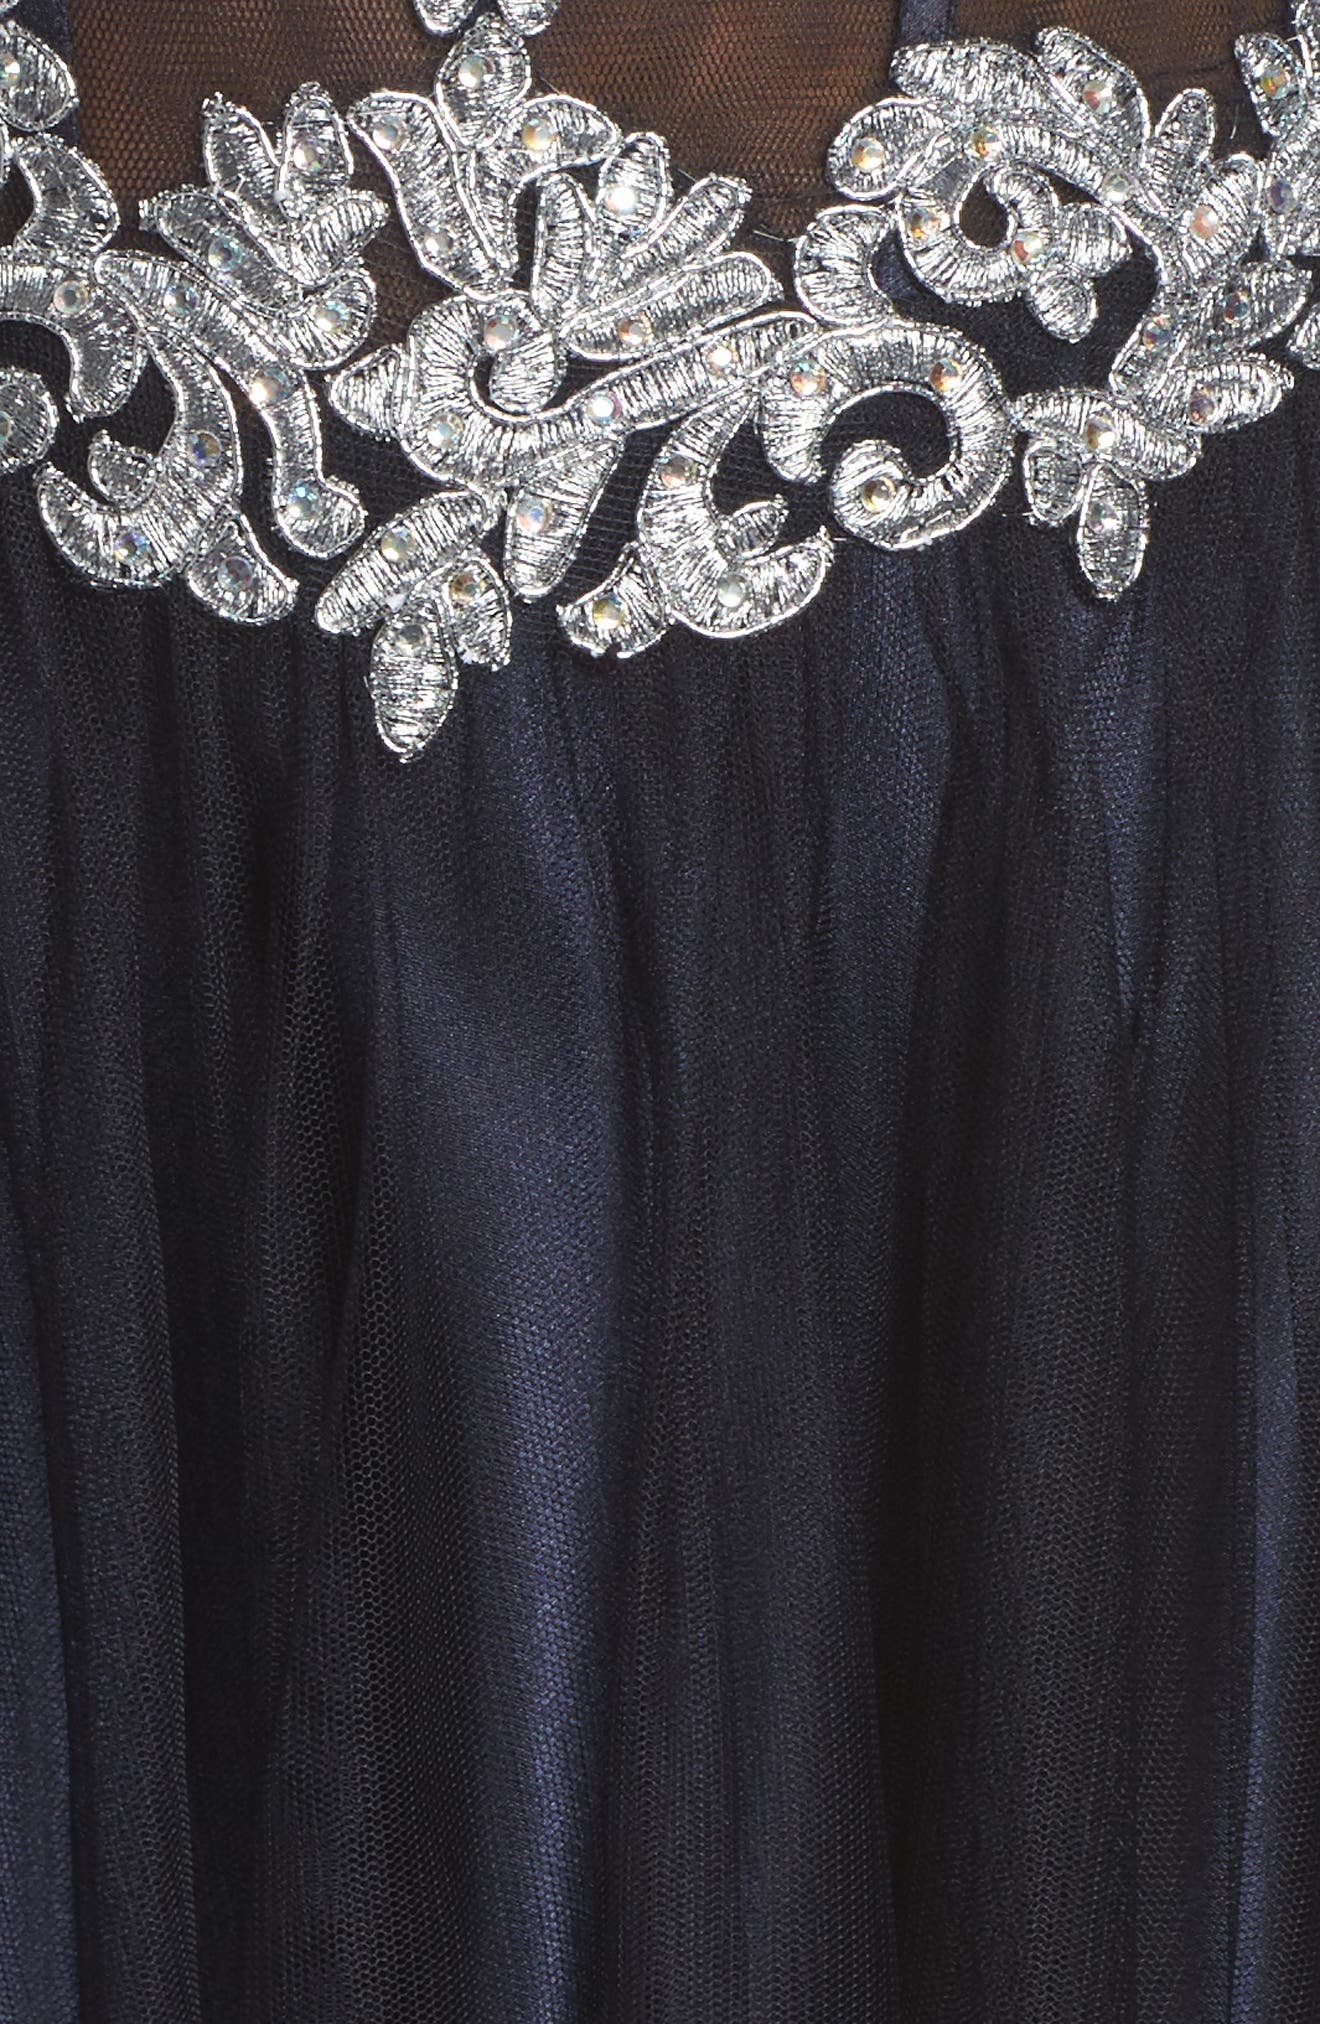 Embellished Corset Ballgown,                             Alternate thumbnail 5, color,                             Navy/ Silver